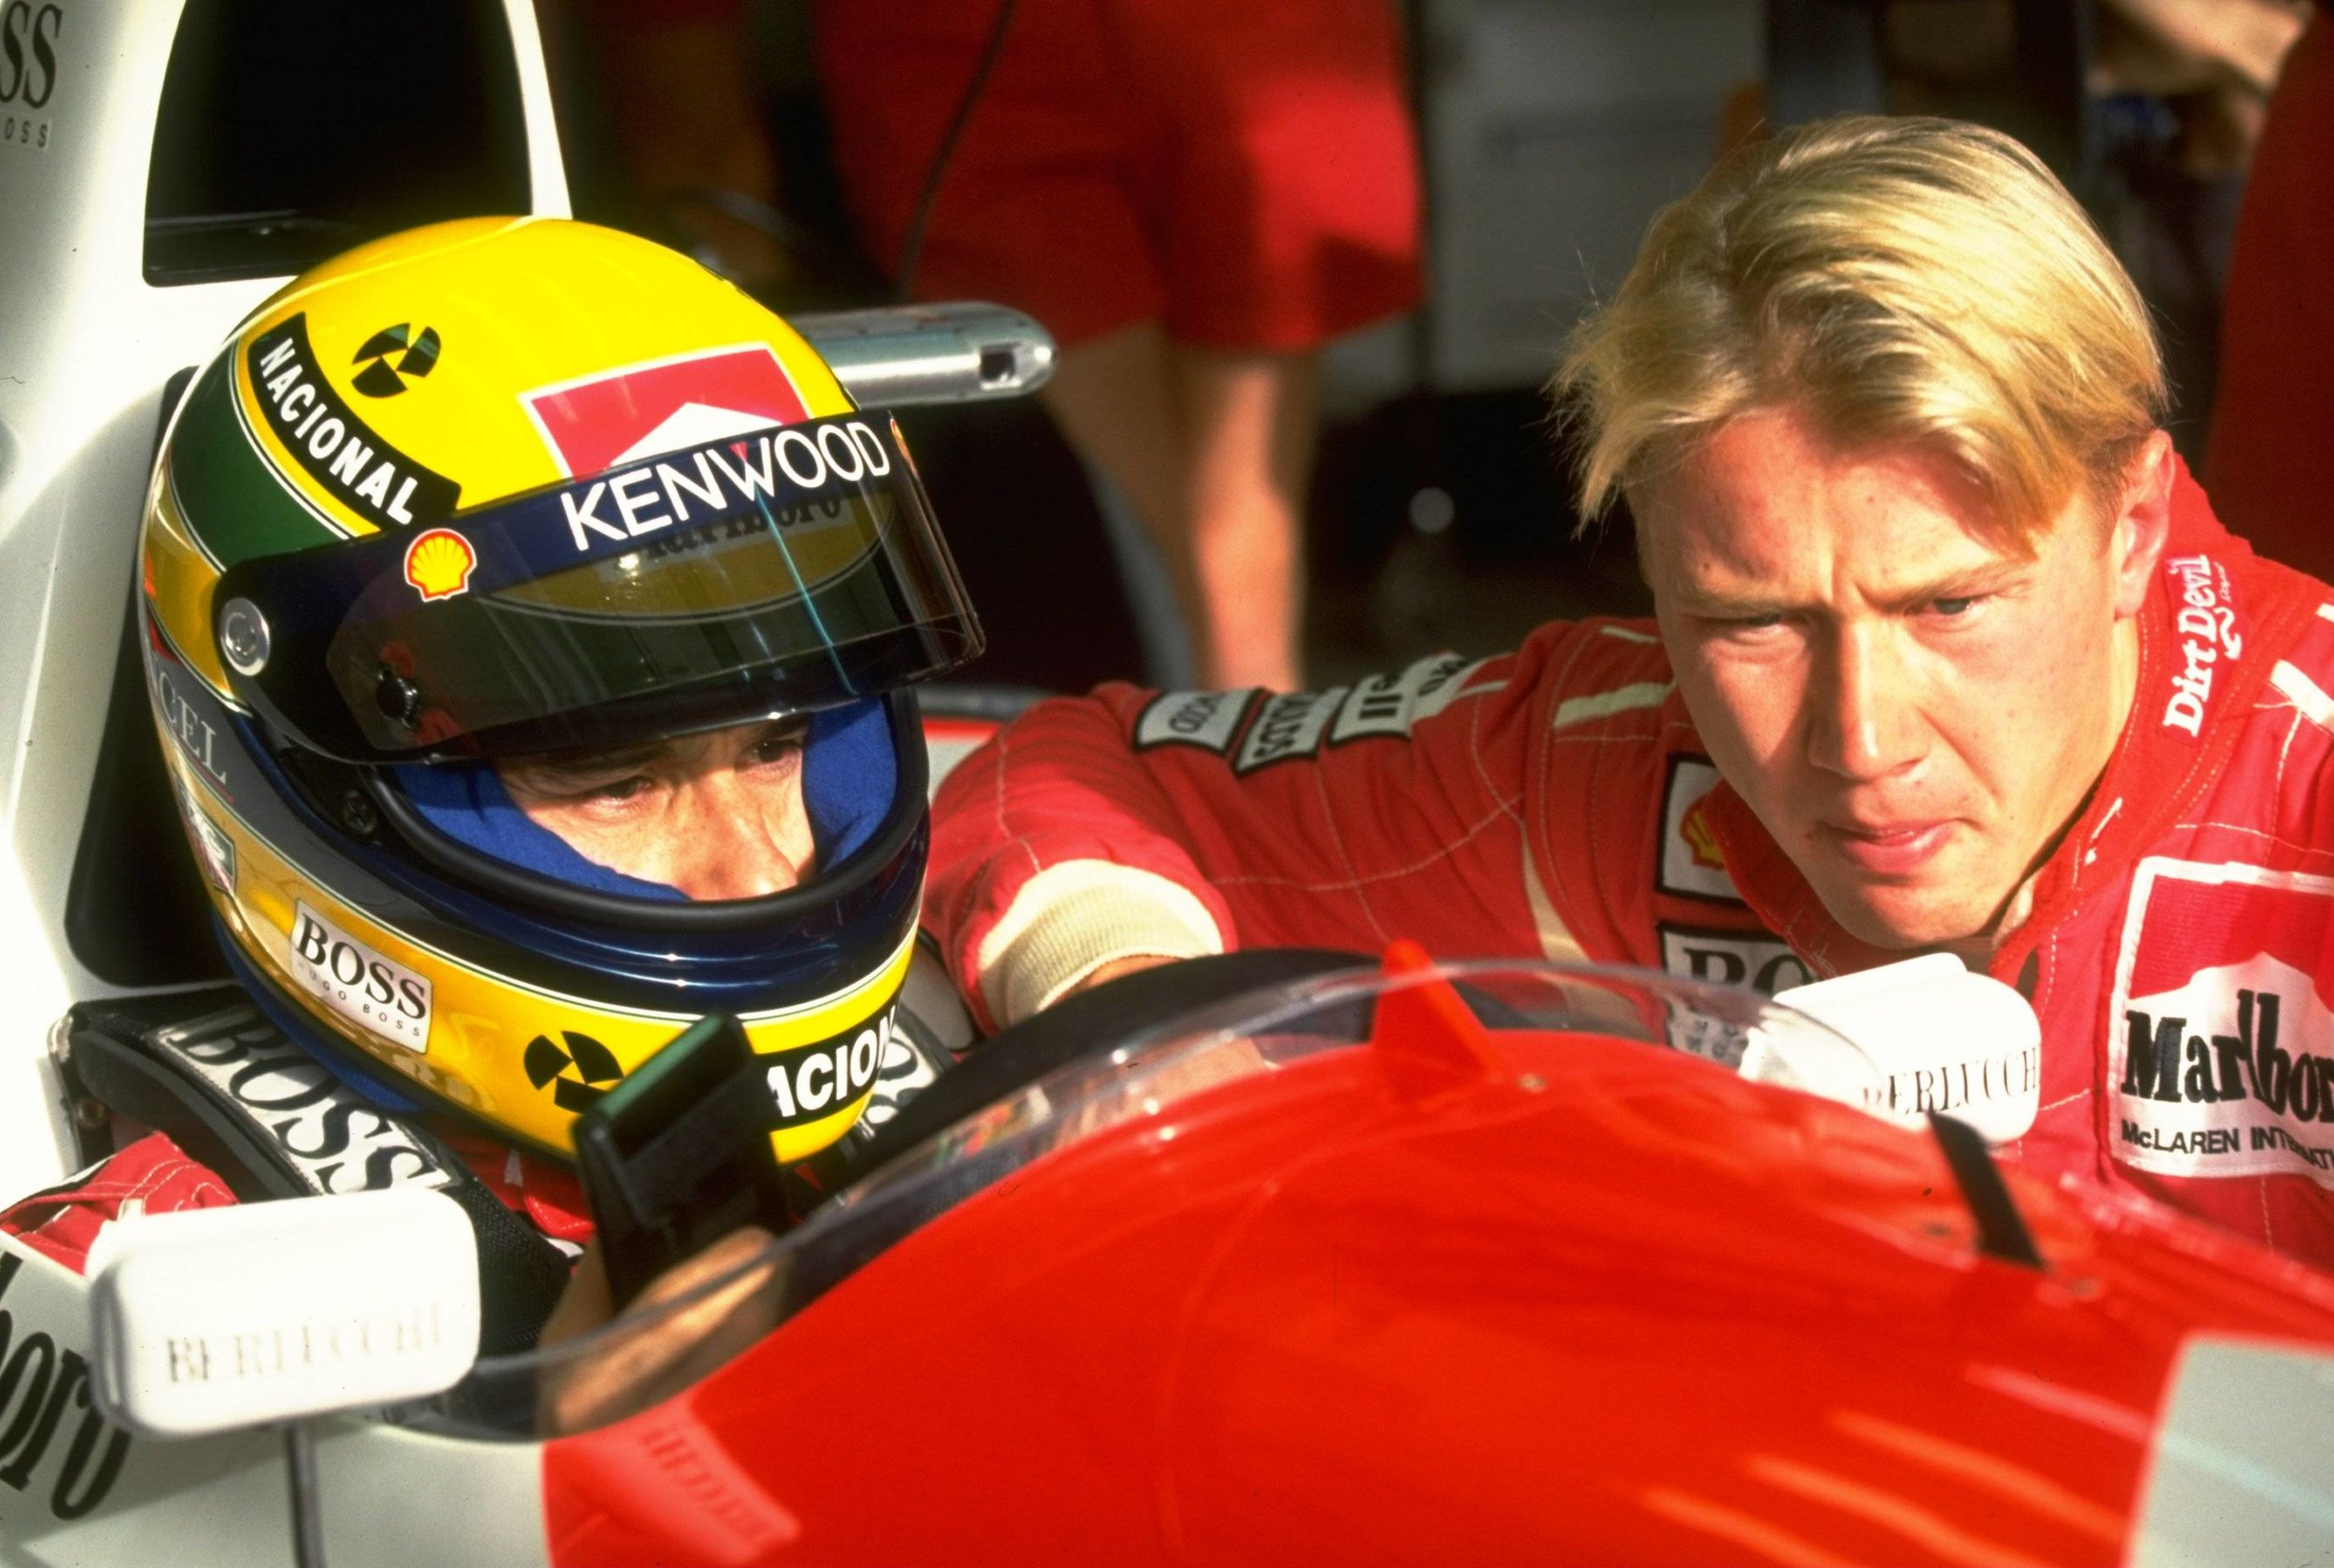 Mika Häkkinen lost his F1 seat to Michael Andretti prior to the start of the season.